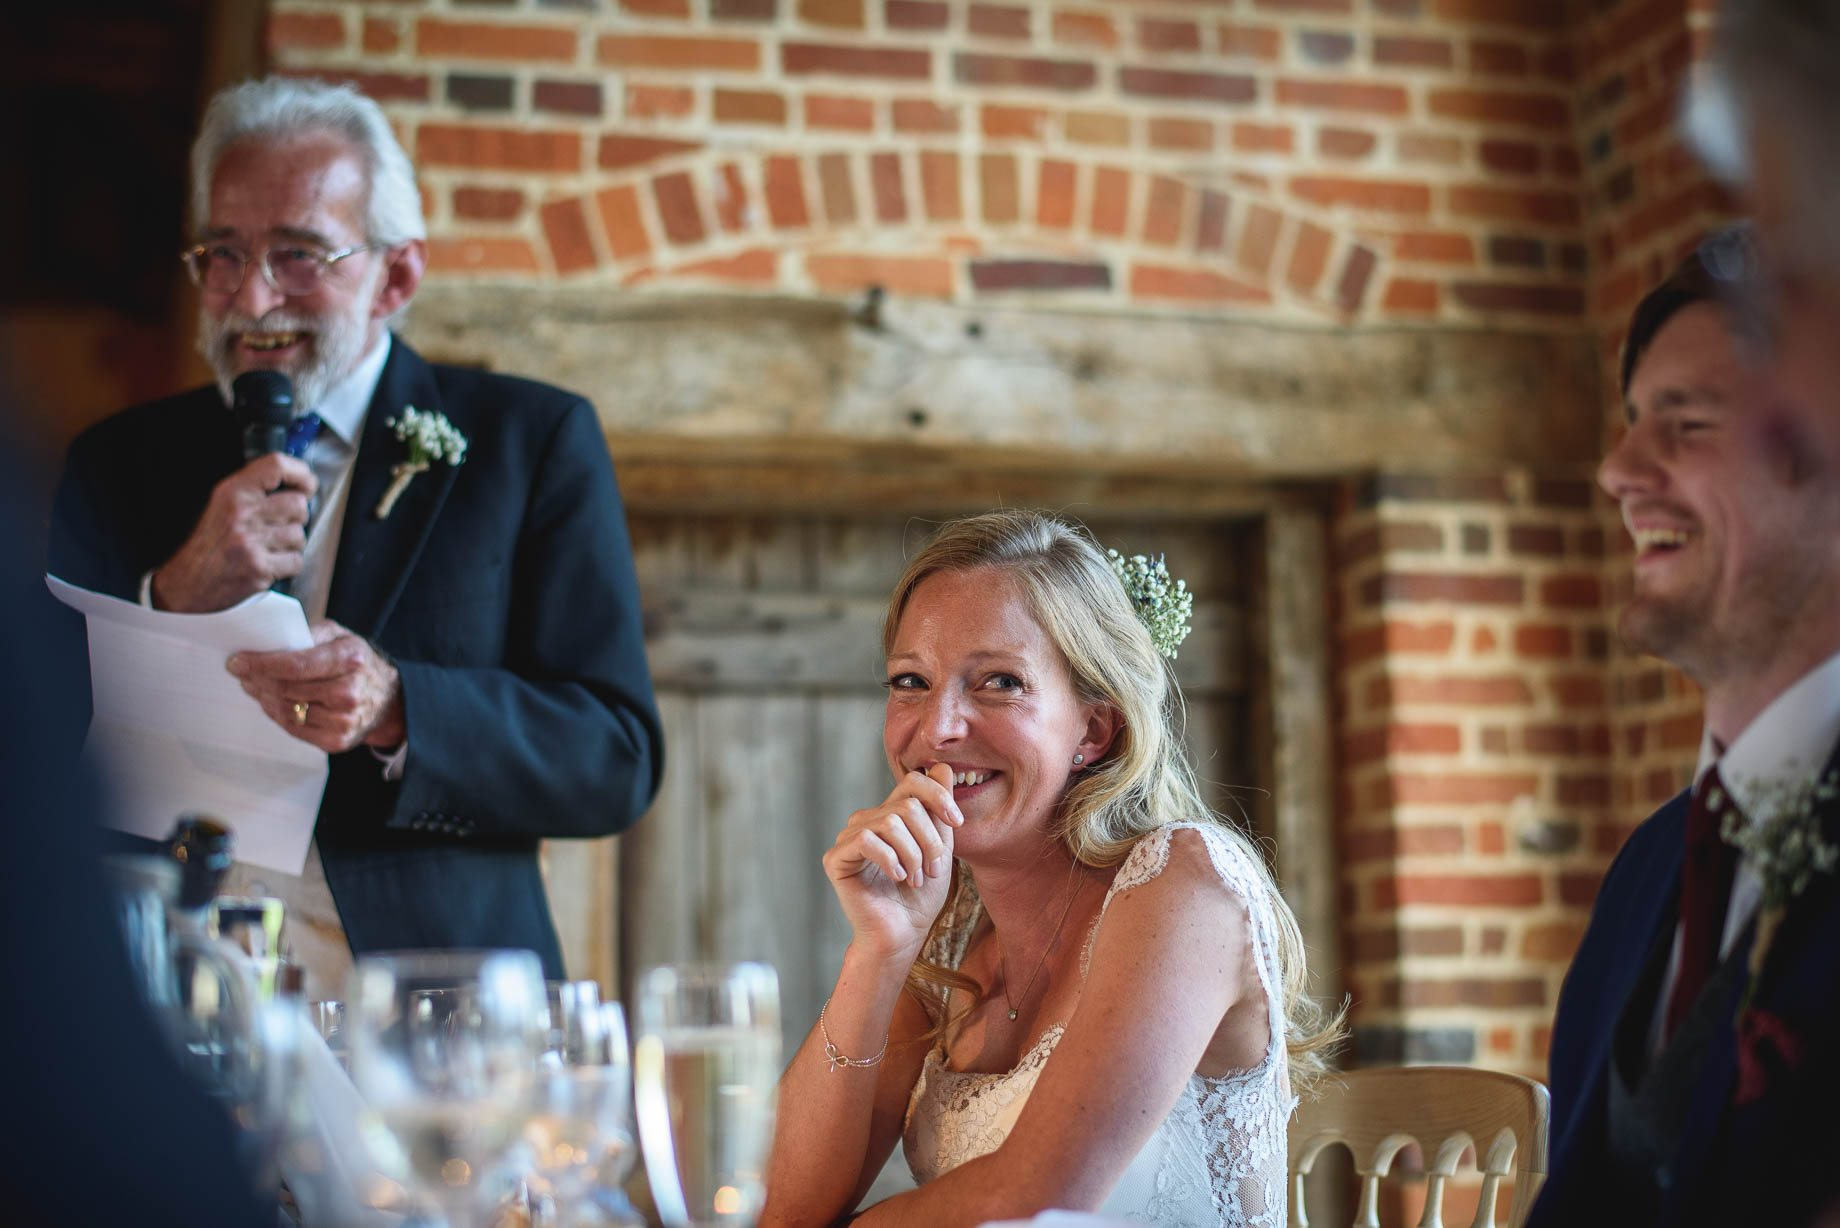 Bury Court Barn wedding photography by Guy Collier - Heather and Pat (135 of 170)